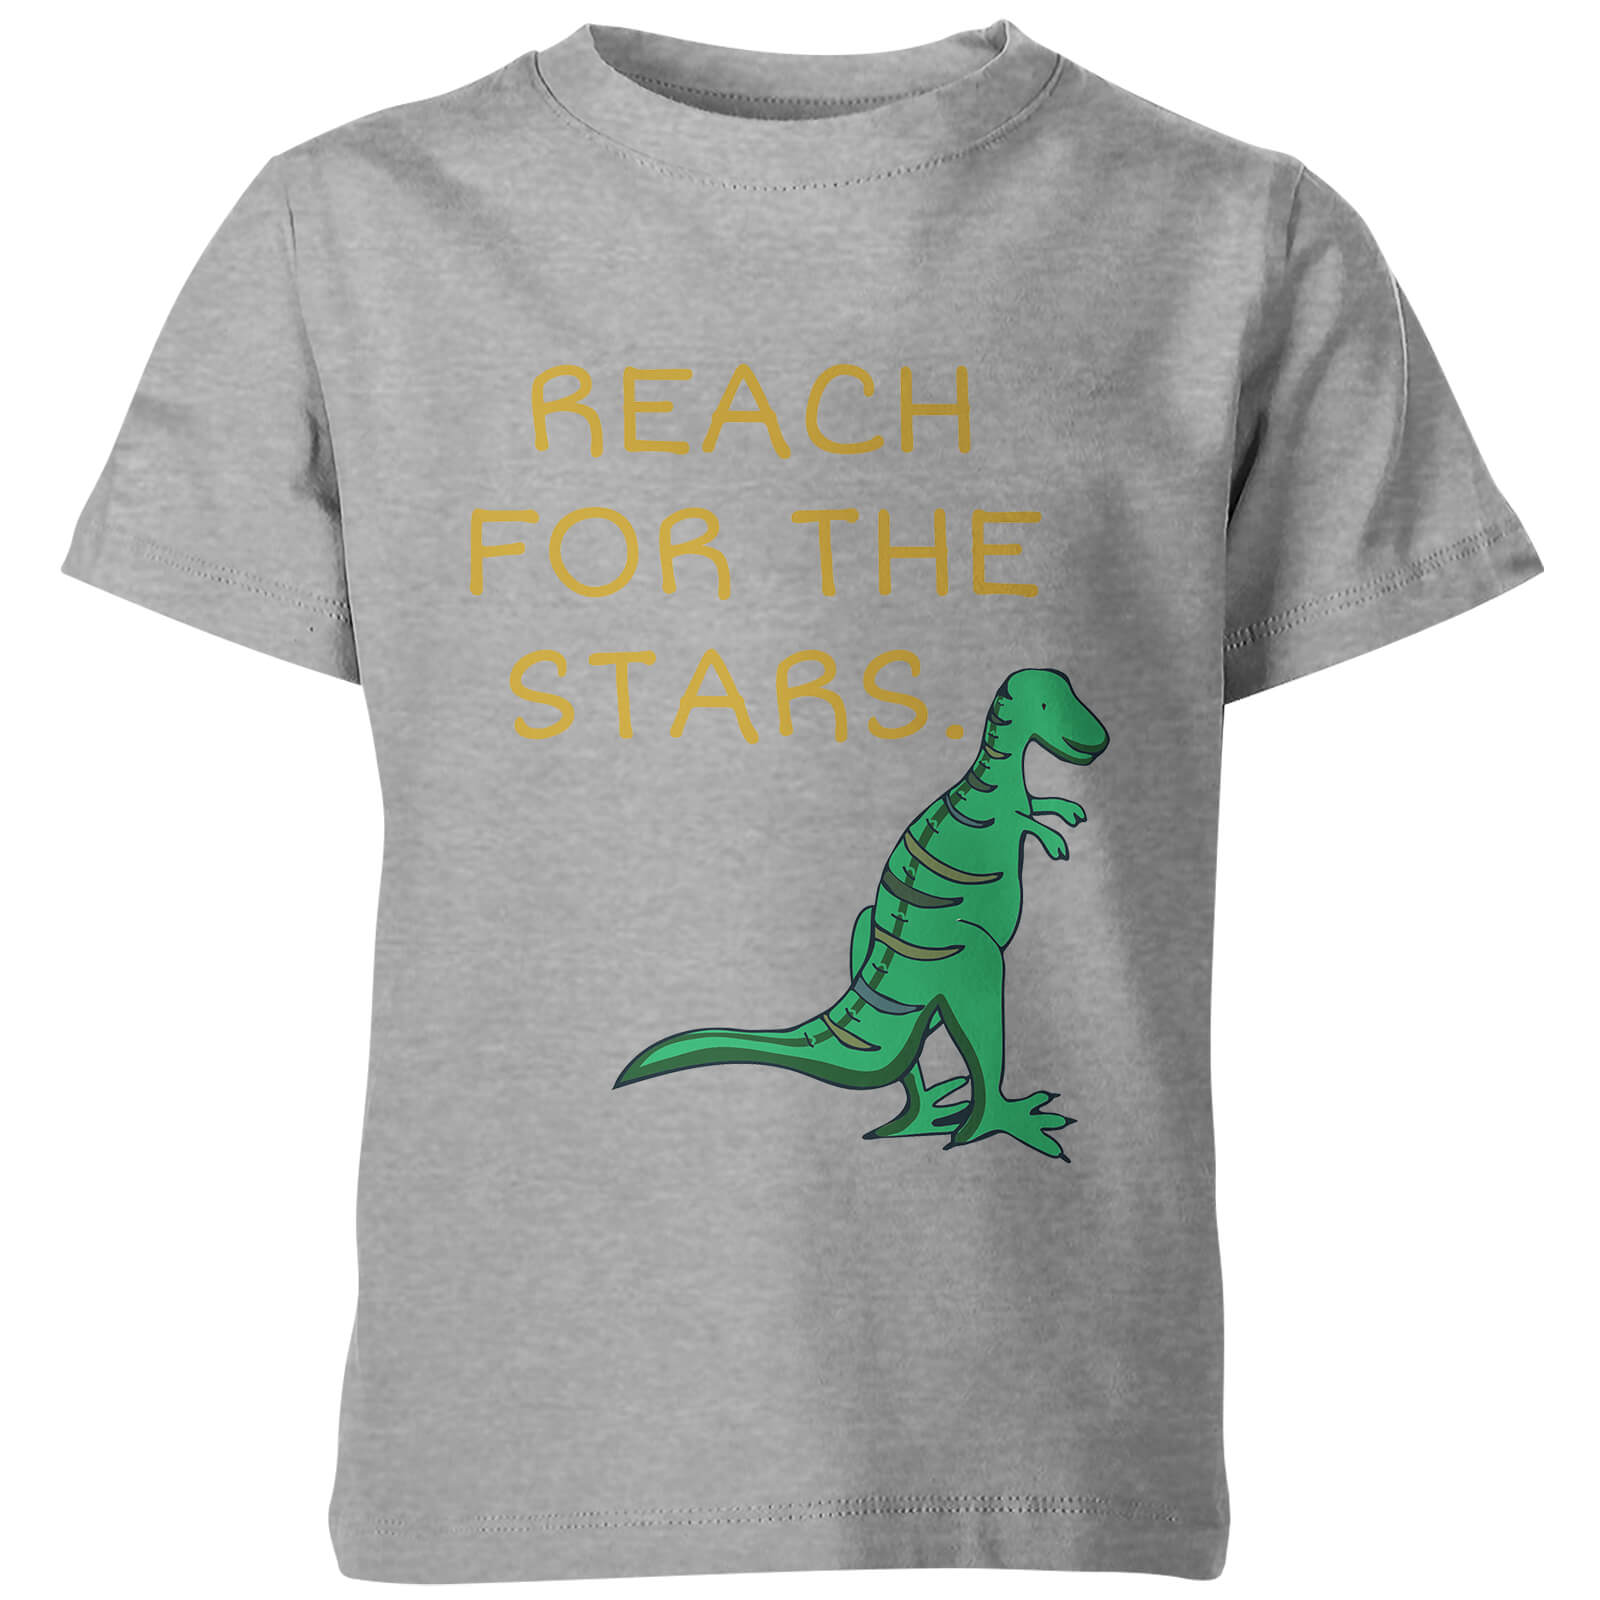 My Little Rascal Kids Dinosaur Reach for the Stars Grey T-Shirt